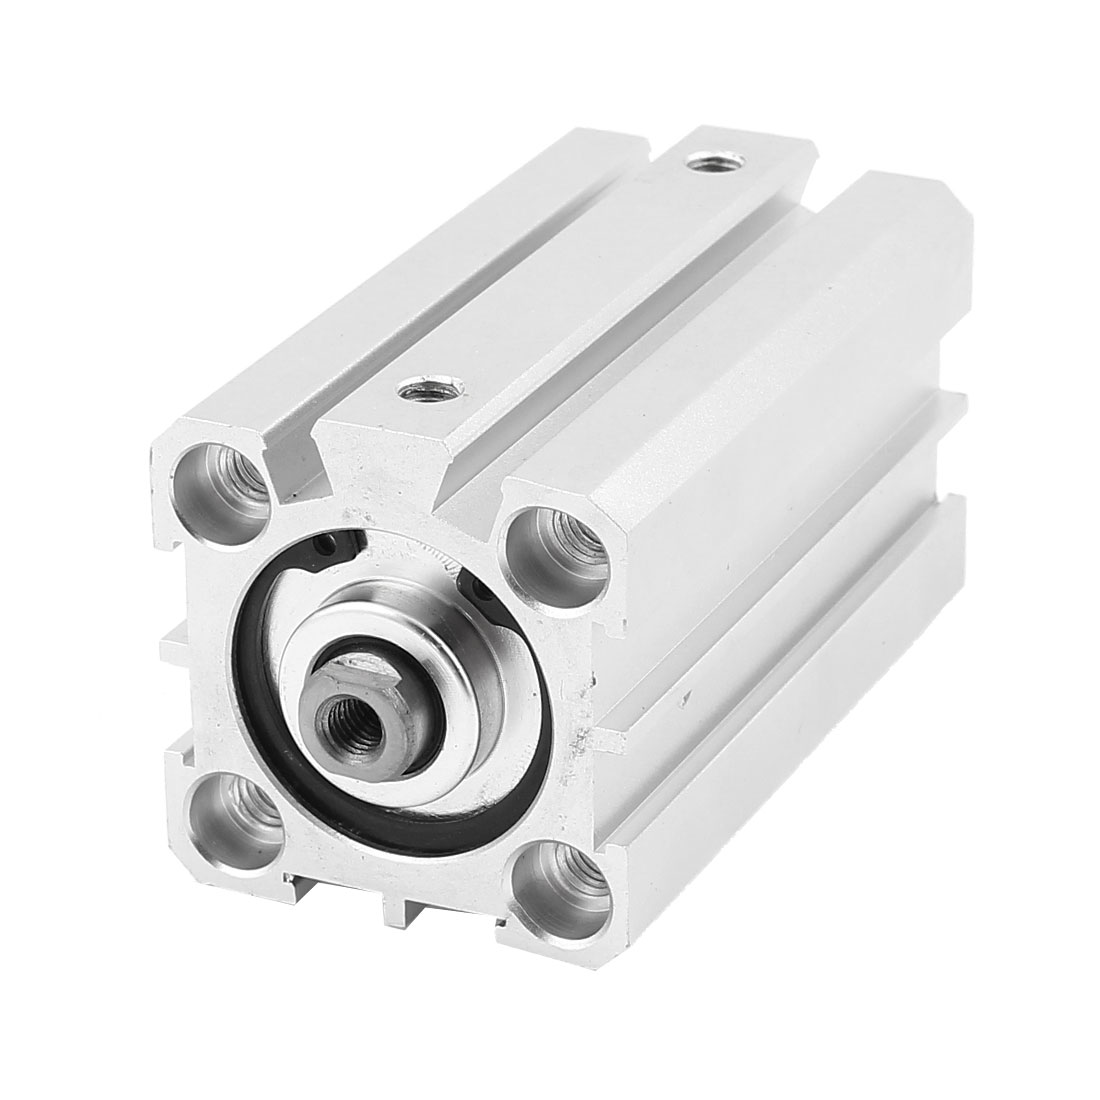 SDA25x50 25mm Bore 50mm Stroke Single Rod Aluminum Alloy Pneumatic Air Cylinder